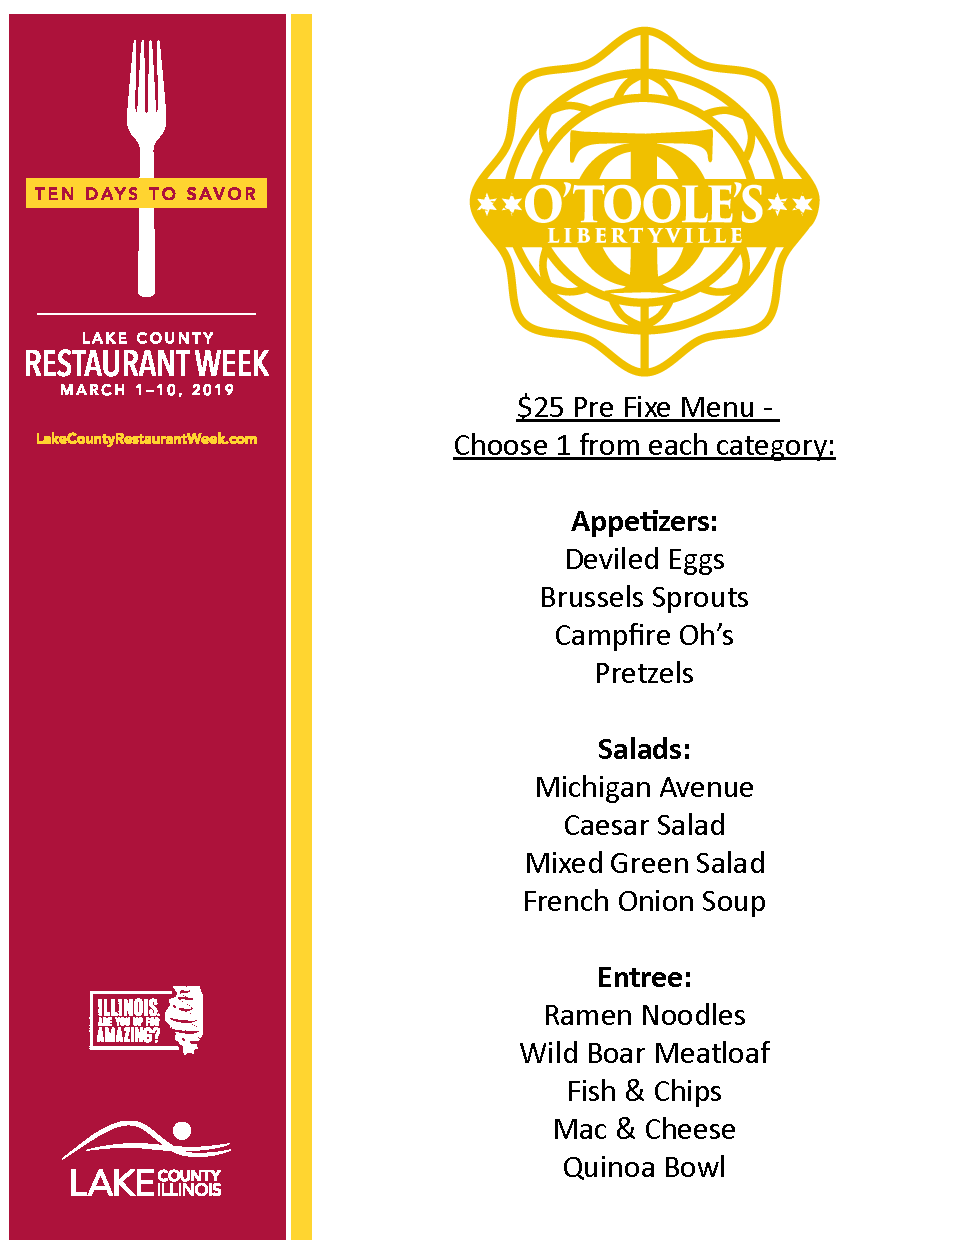 O'Toole's Libertyville Menu